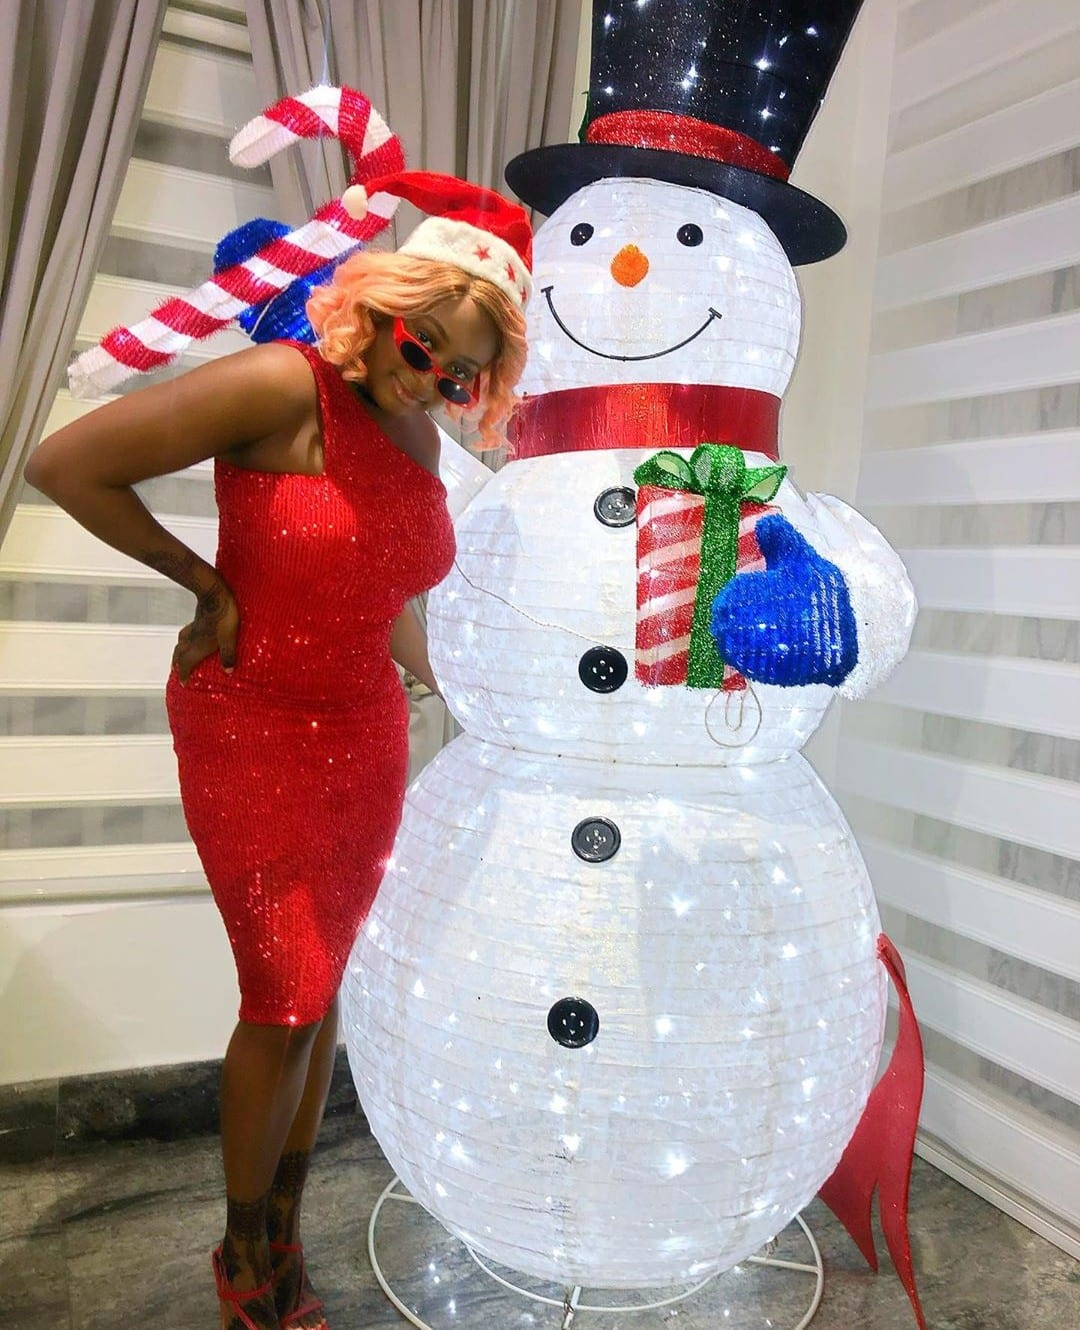 DJ Cuppy stacks N500k in a fridge to gift her manager, Elizabeth (Video)